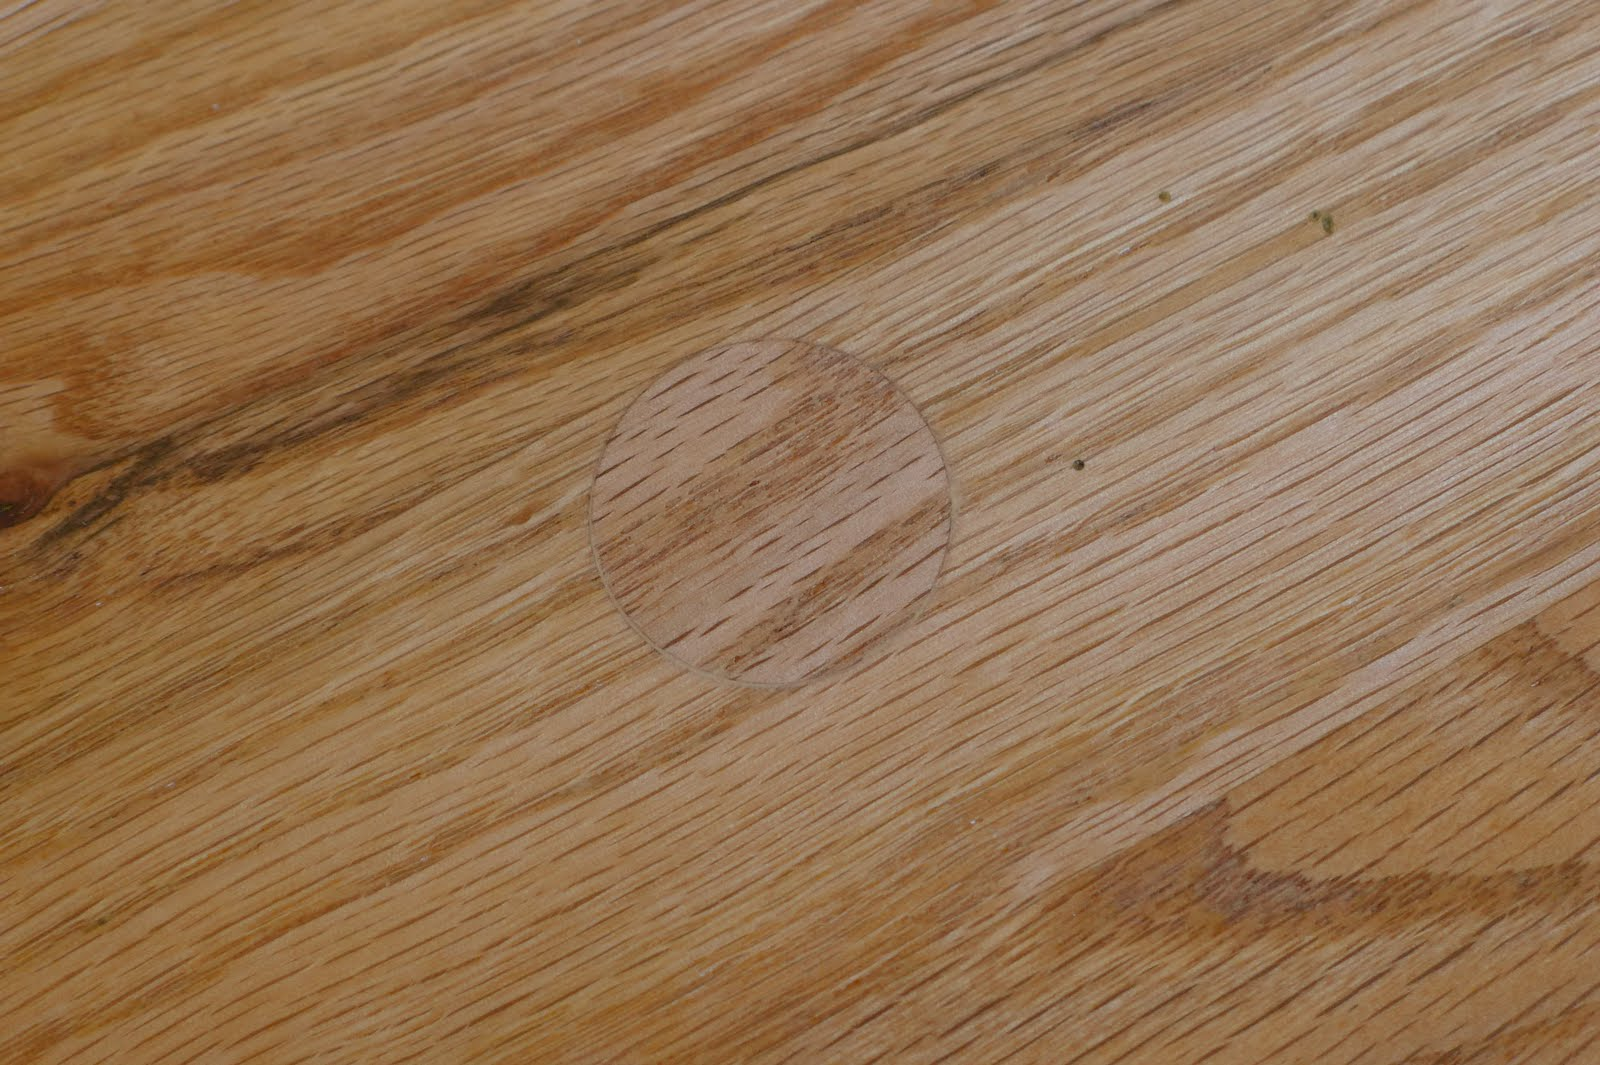 Projects oak hardwood floor repair for Wood floor repair